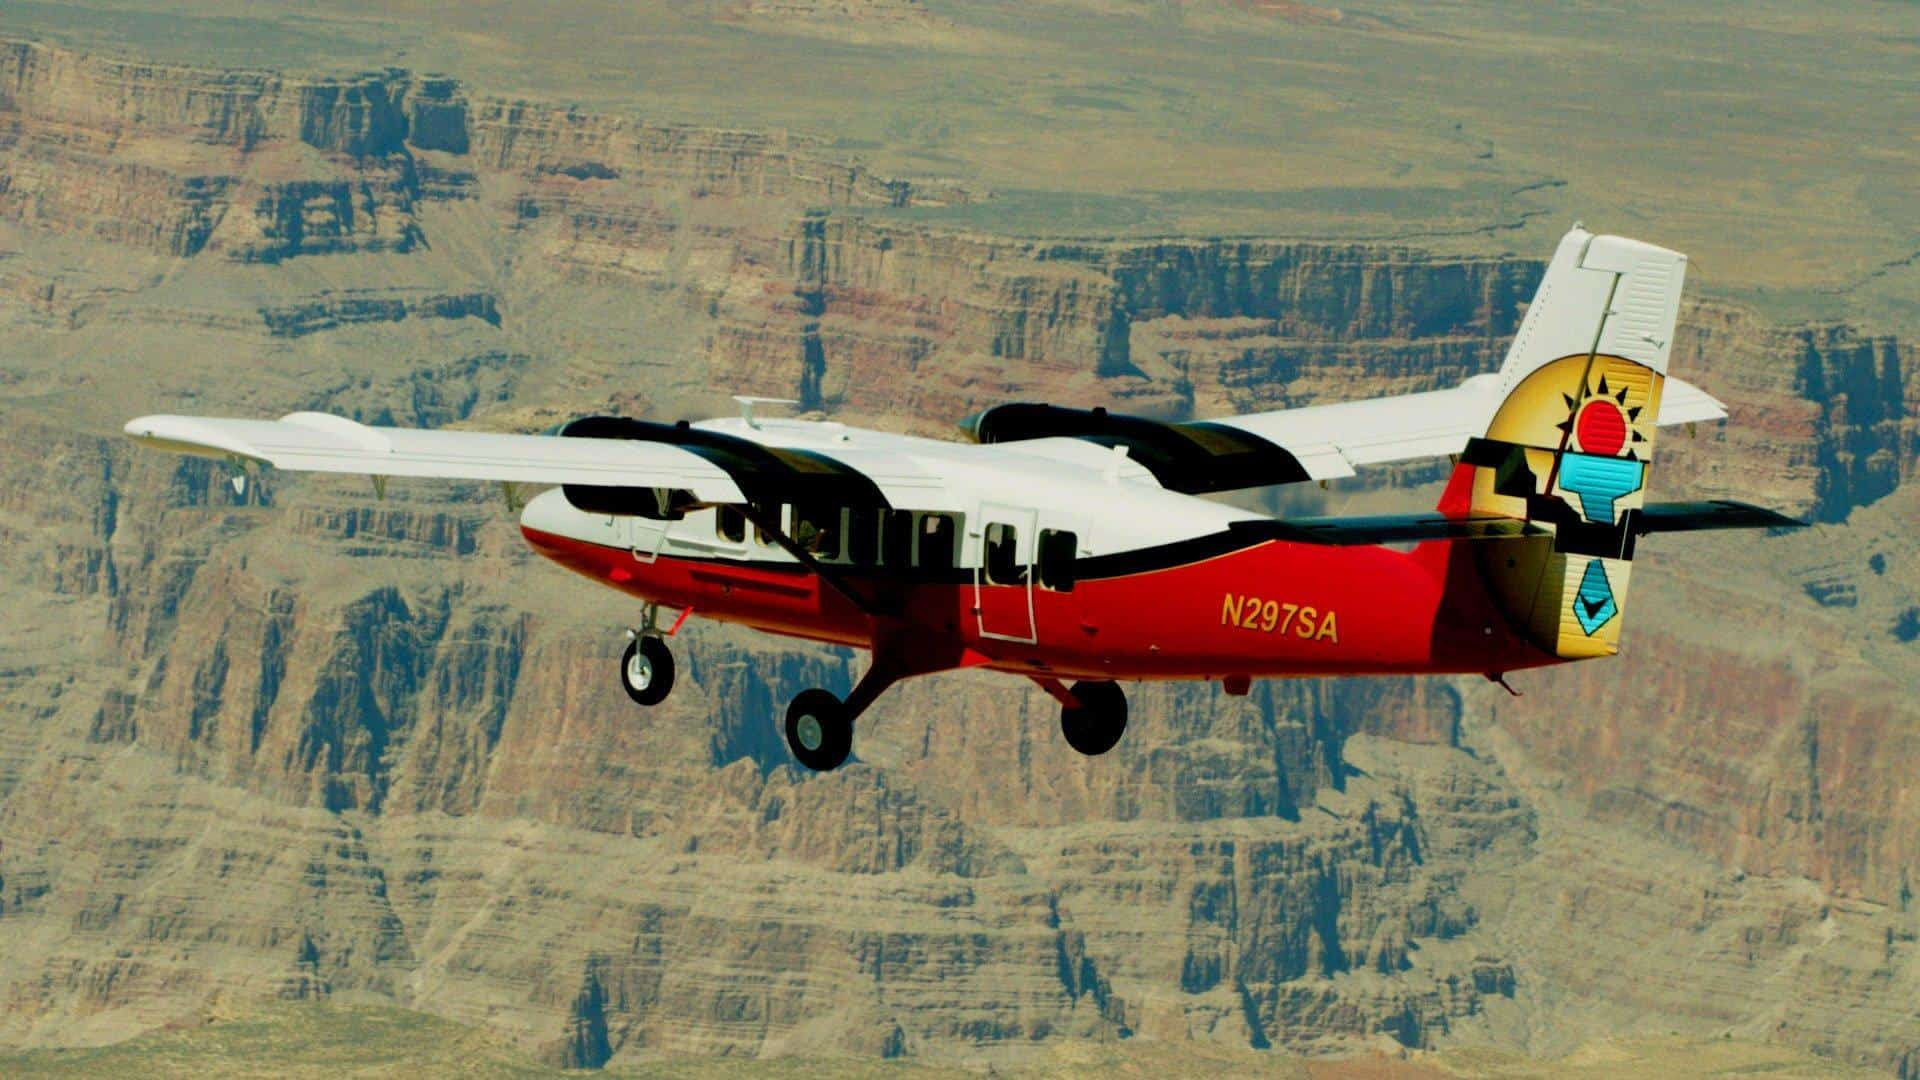 Grand Canyon West Rim Luxury Helicopter Tour Discount – Save $100